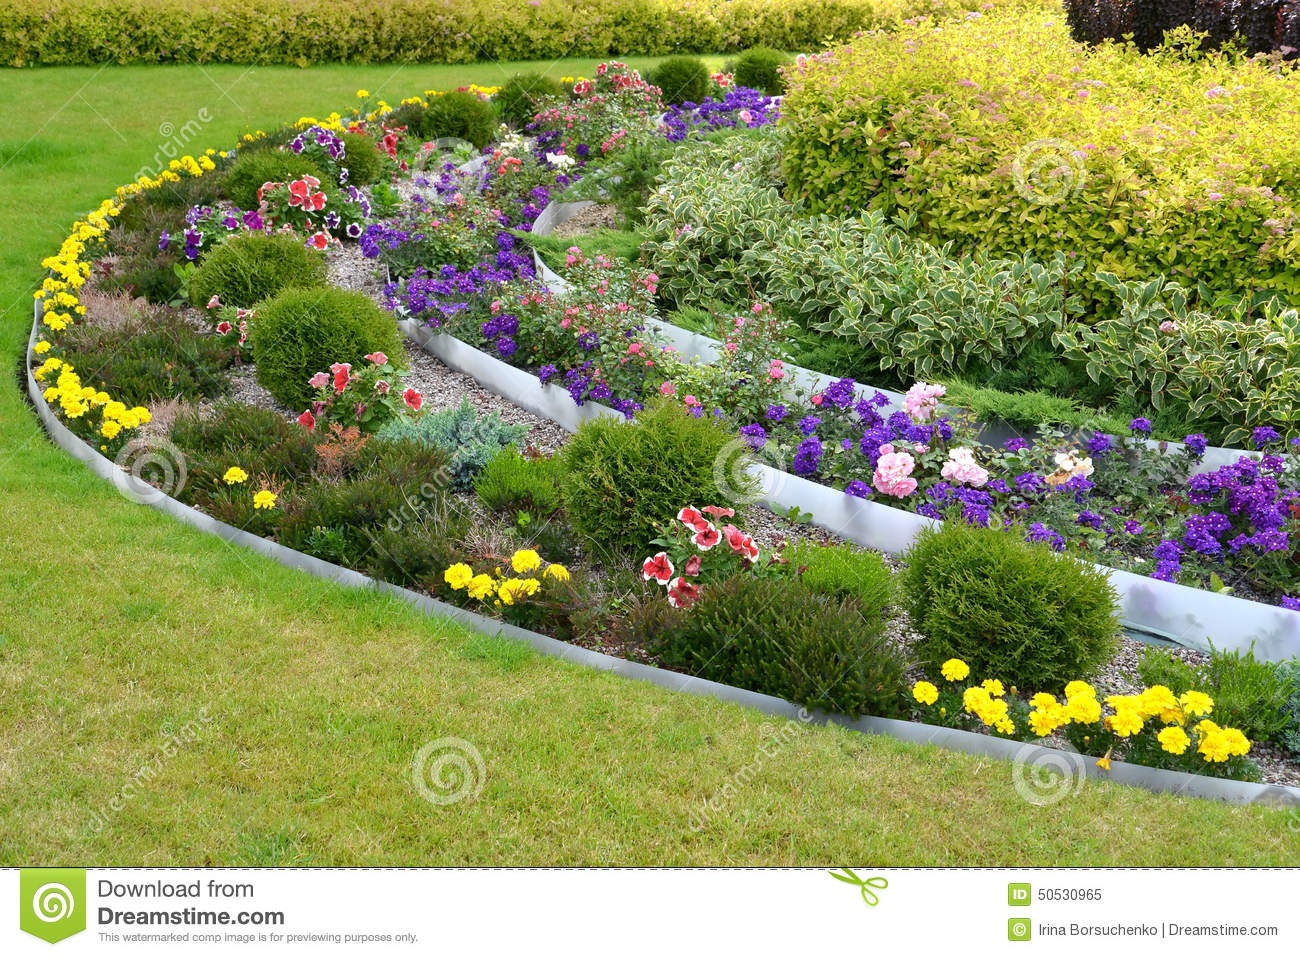 Landscaping With Flowers And Bushes Stock Image Image Of Bush